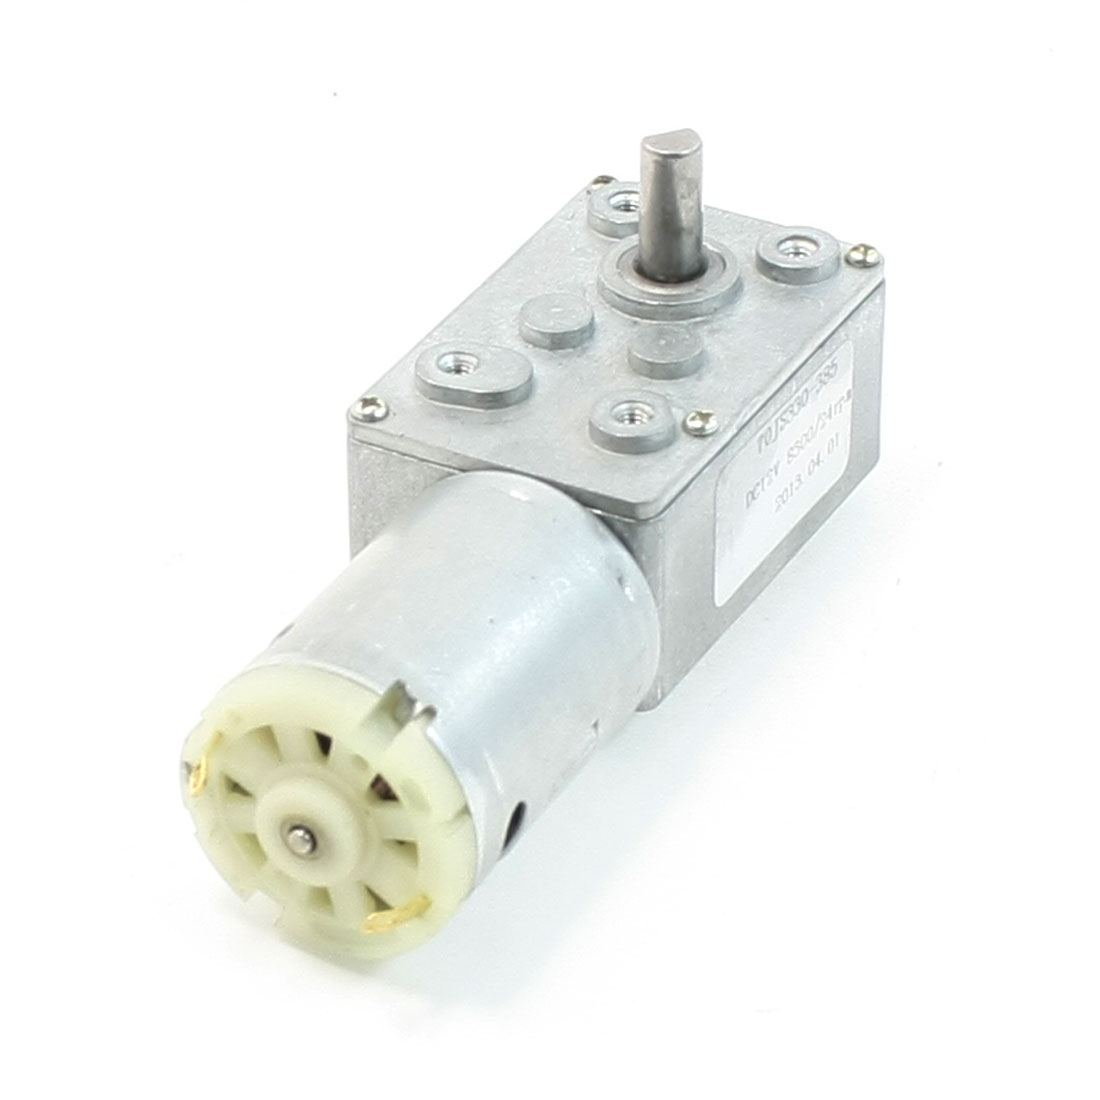 Rectangle Shaped Gear Box 2 Terminal Electric Geared Motor DC 12V 8300/24RPM